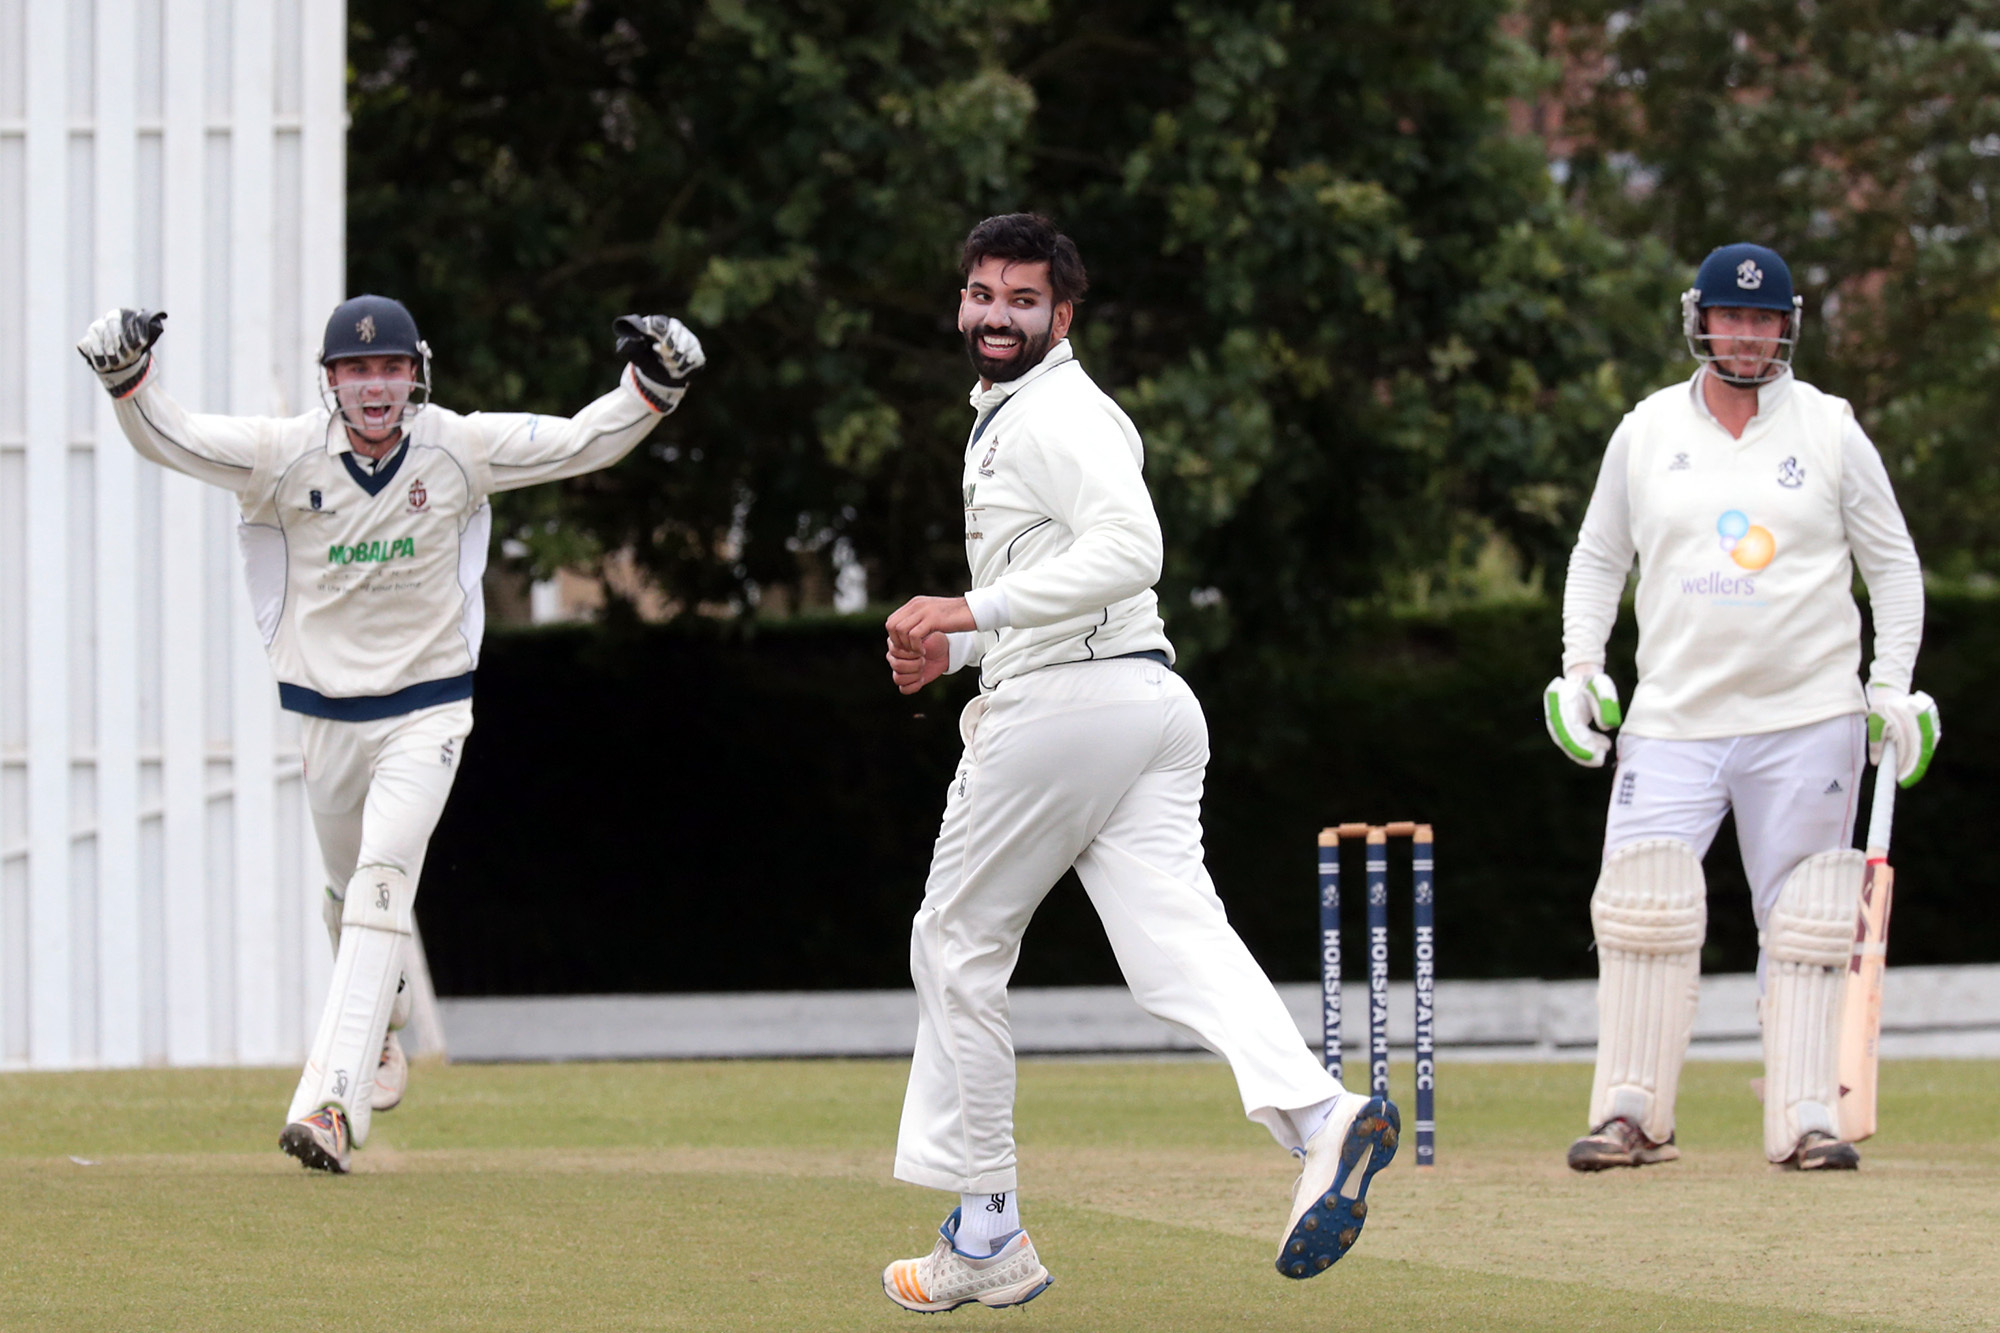 MIXED EMOTIONS: Thame Town's Hassam Mushtaq and wicket-keeper Callum Russell celebrate as Horspath batsman Robbie Eason shows his despair at edging to Will Sutcliffe in the slips Picture: Ric Mellis